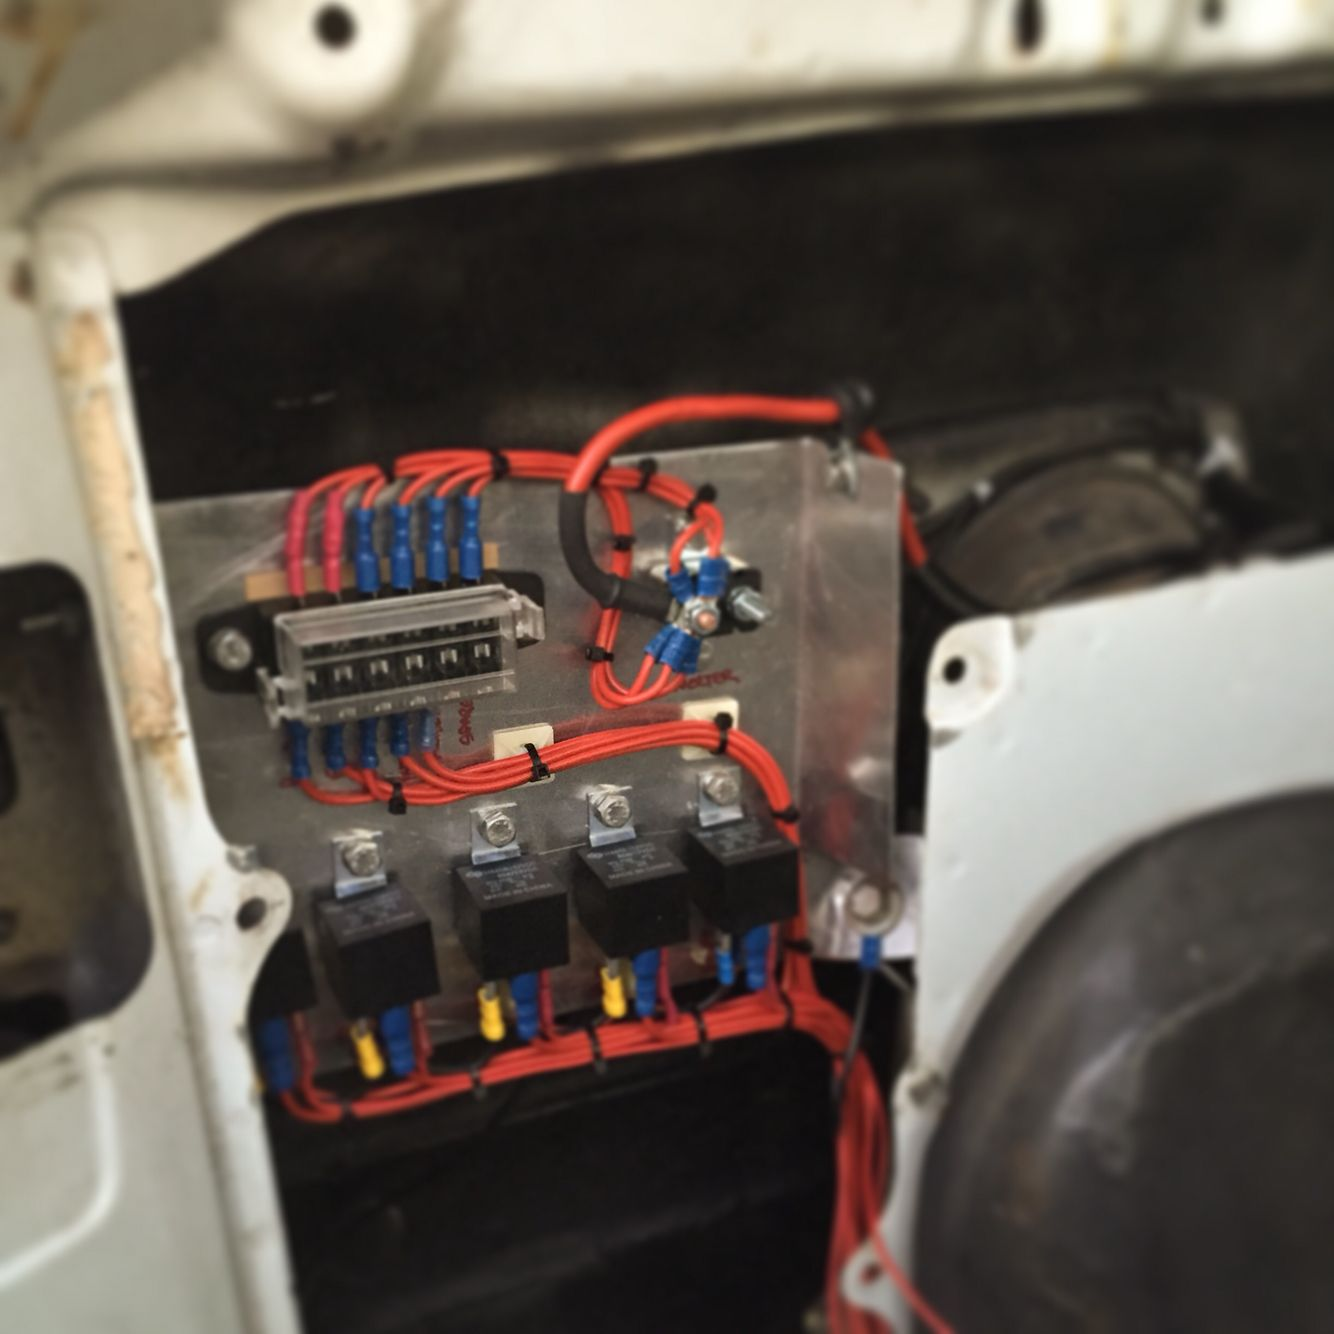 f8b010 land rover defender auxiliary fuse box | wiring resources  wiring resources